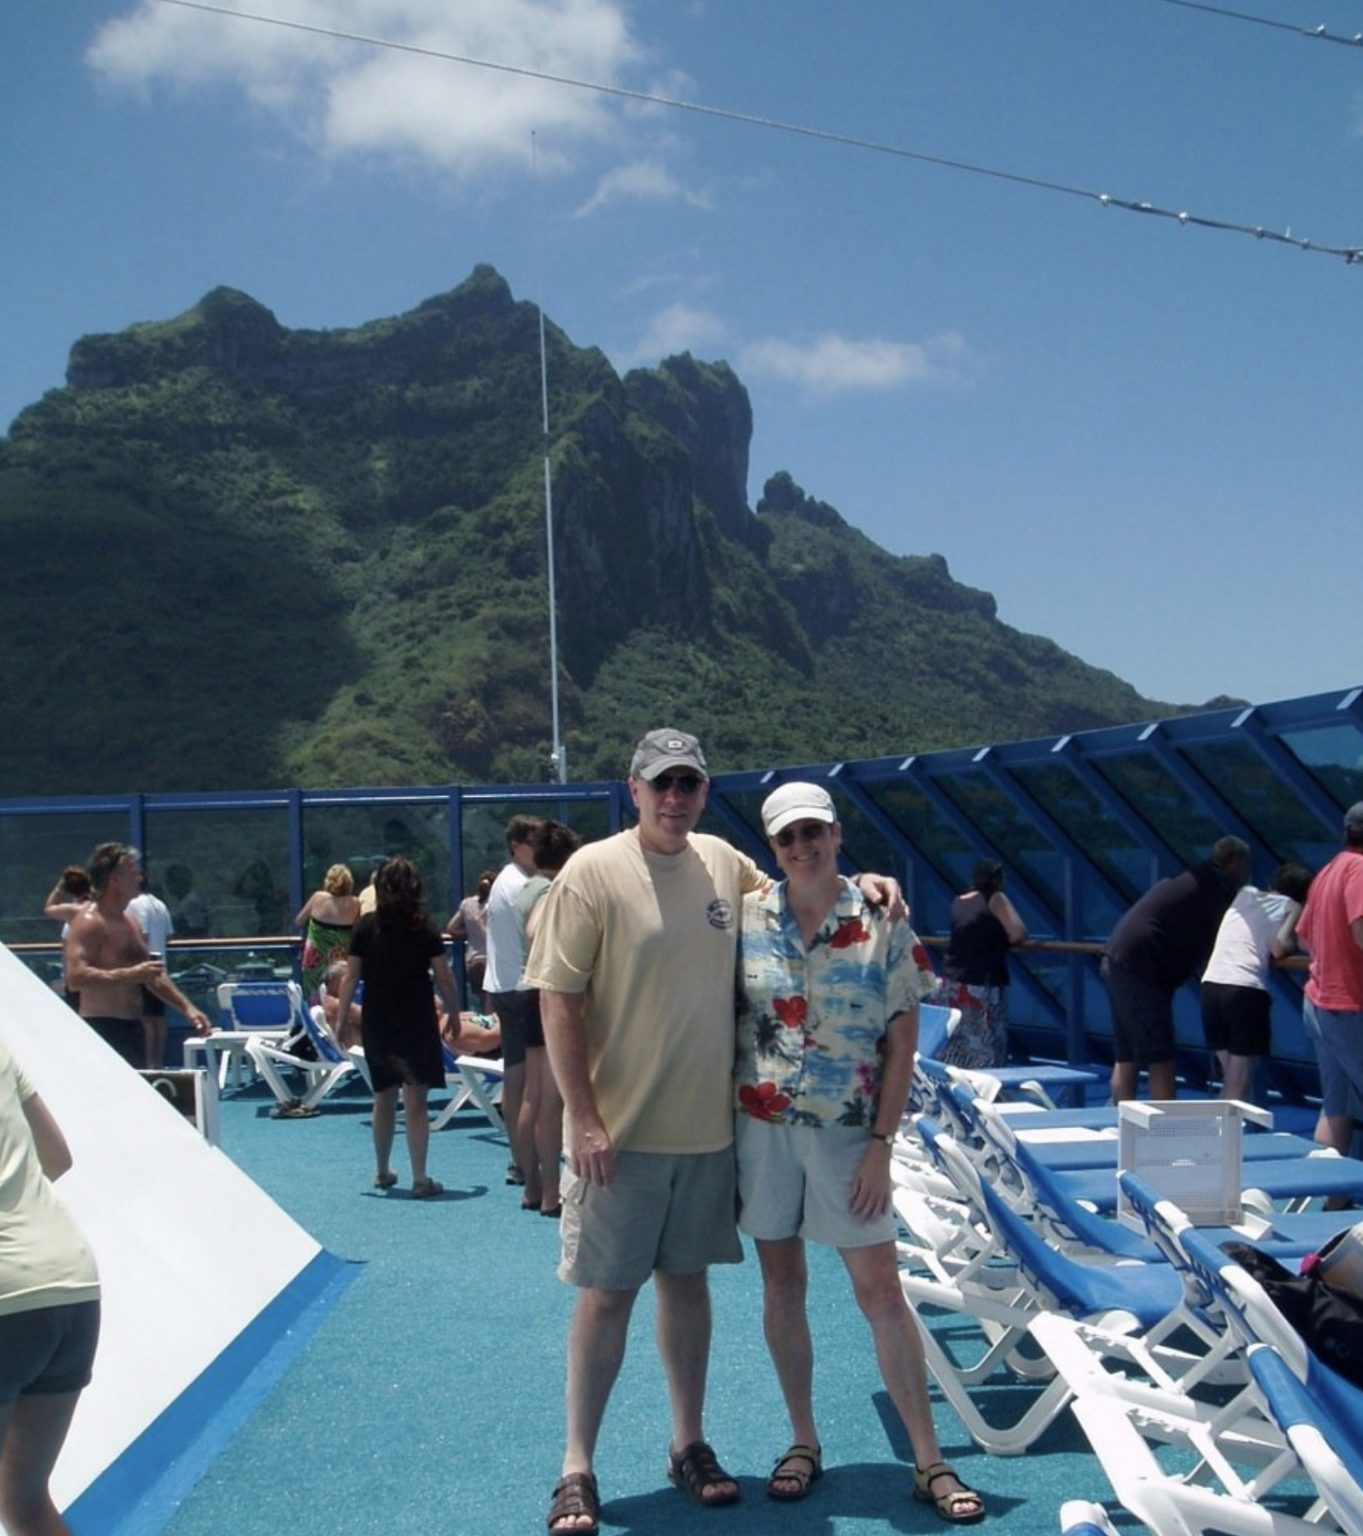 On the cruise ship with Bora Bora in the background.